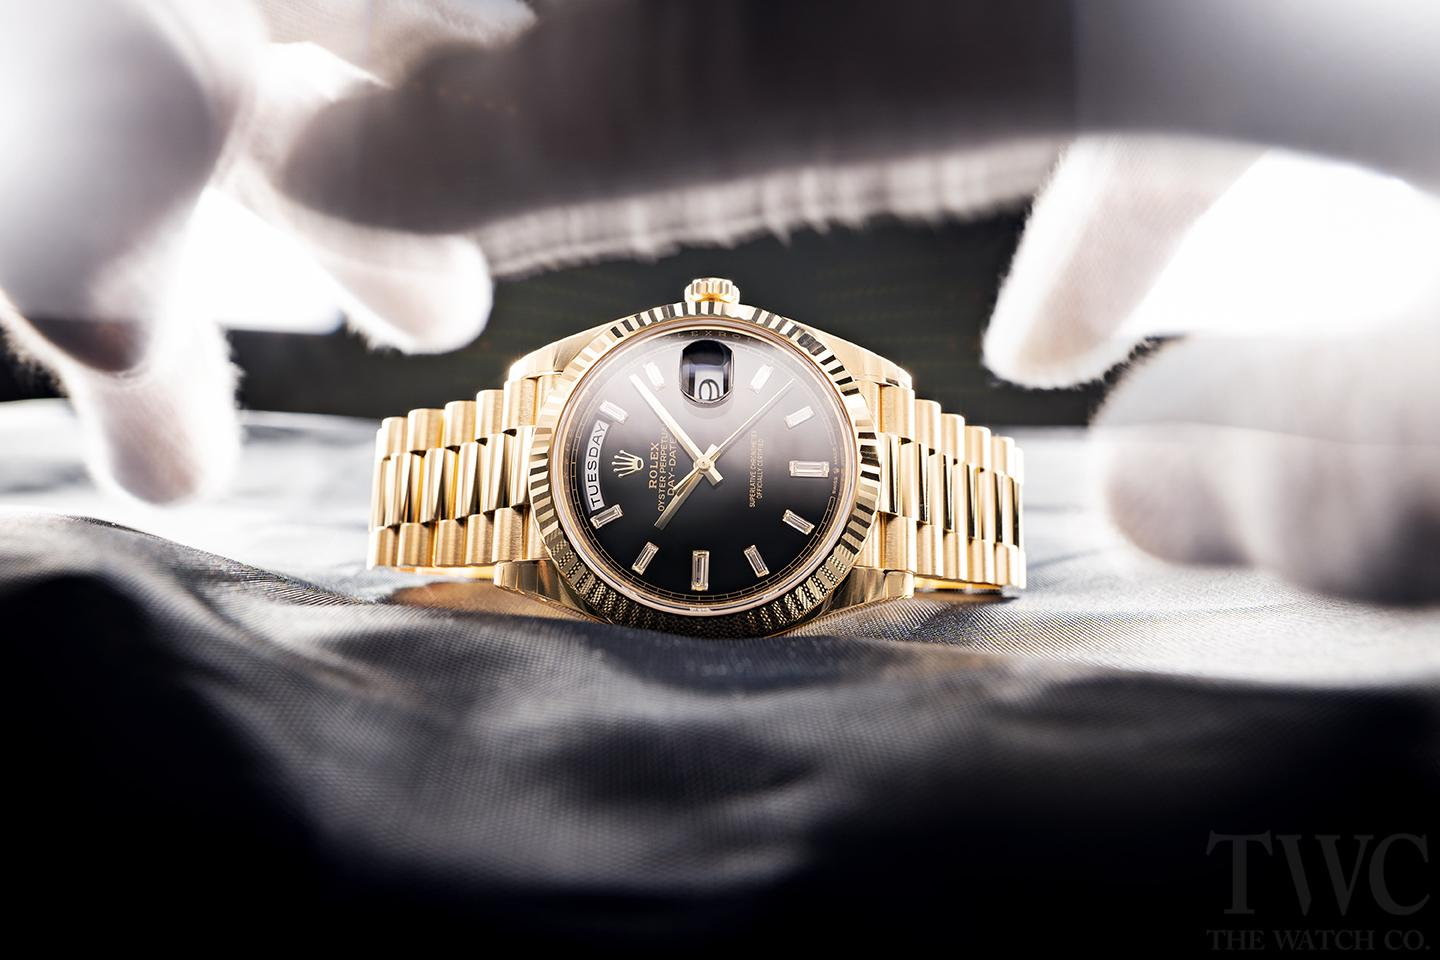 How To Spot A Fake Rolex?